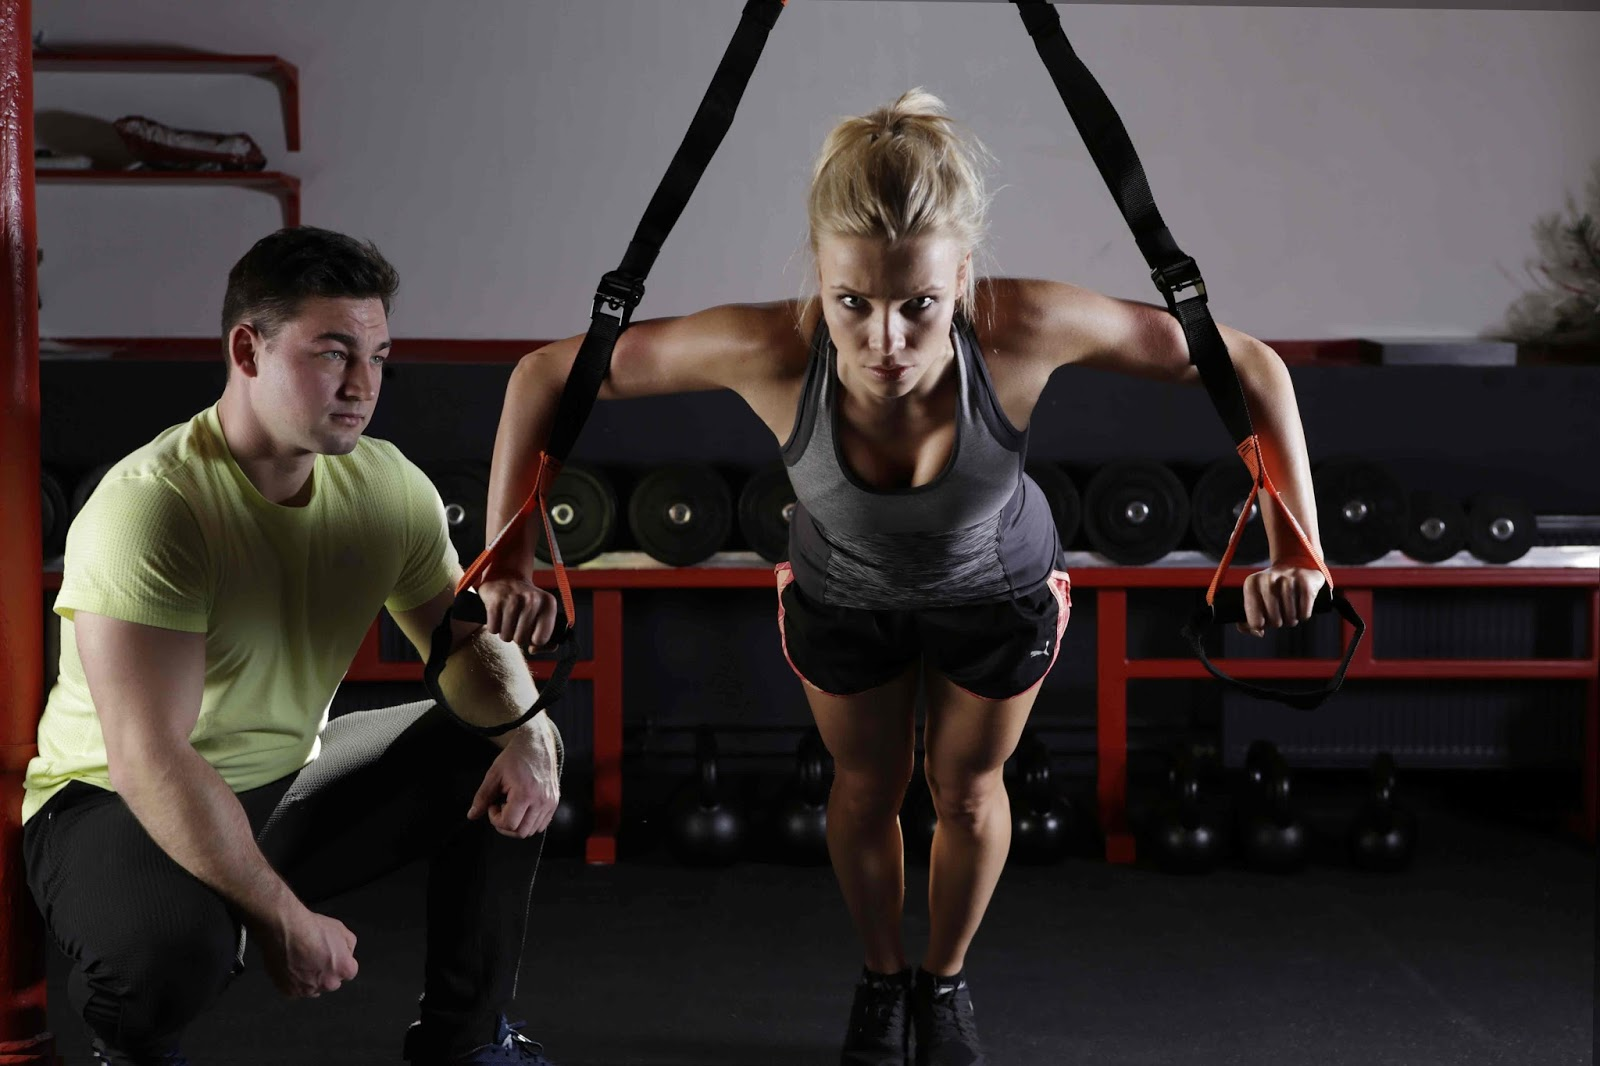 14 Best Exercises To Lose Weight Fast